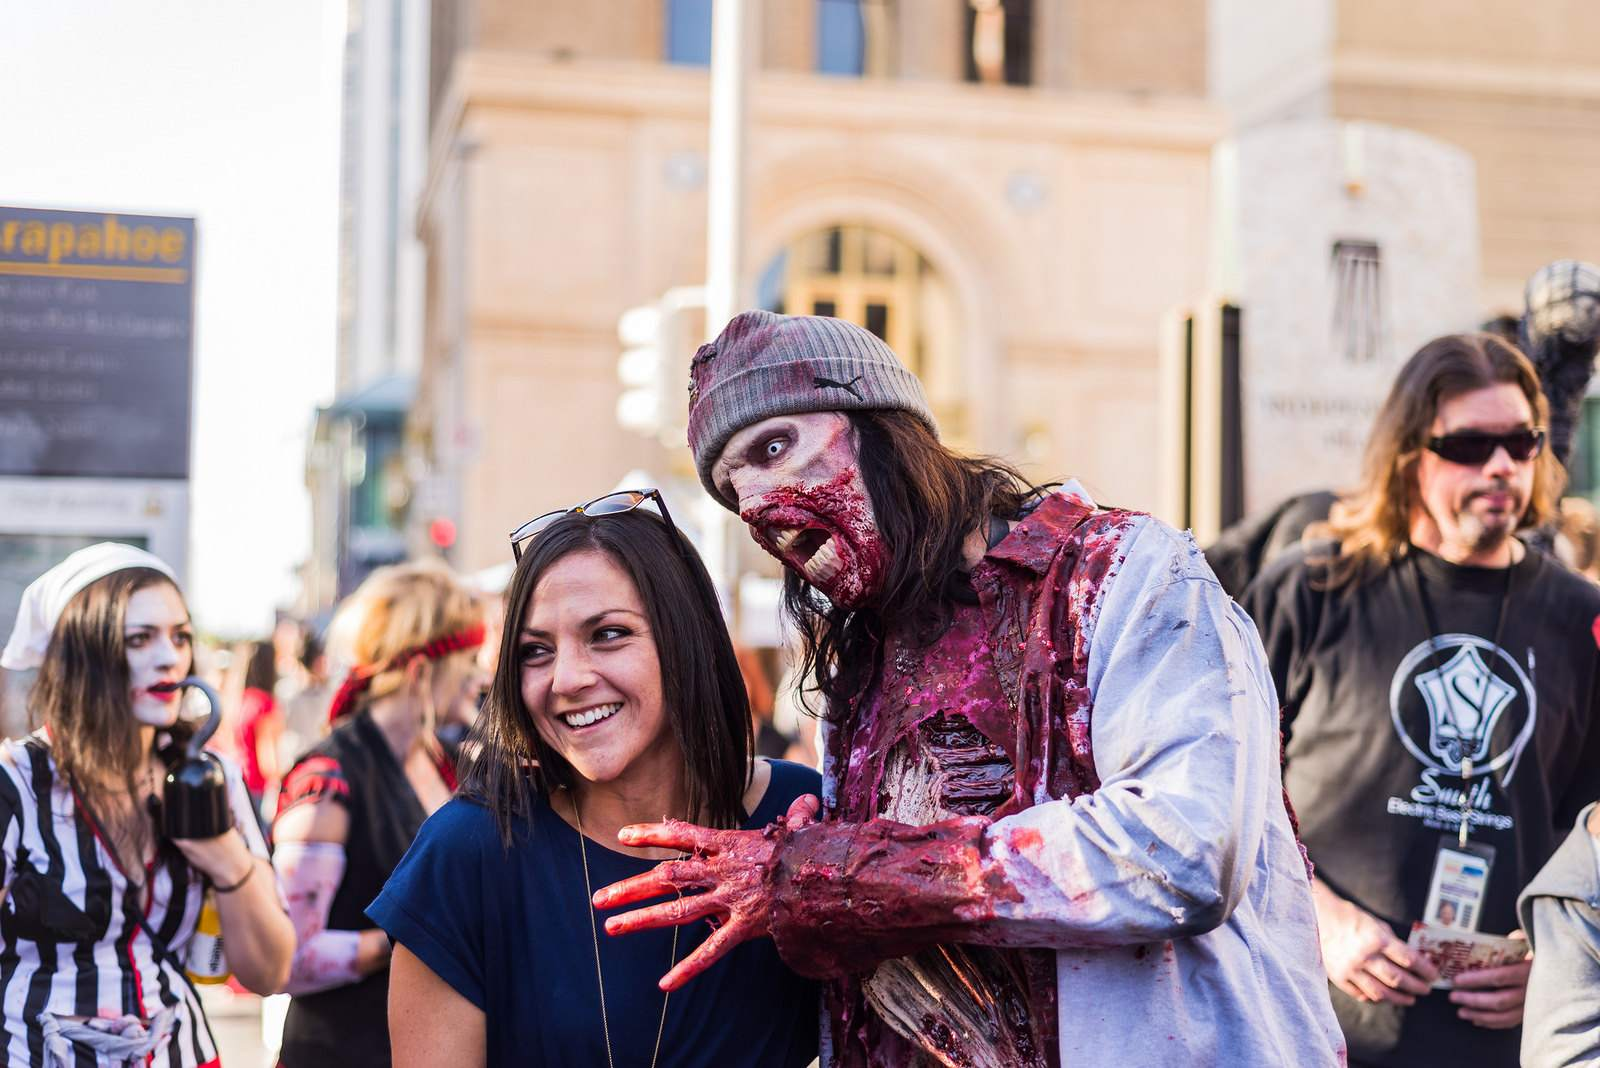 zombie crawl12 The Zombie Crawl in Downtown Denver